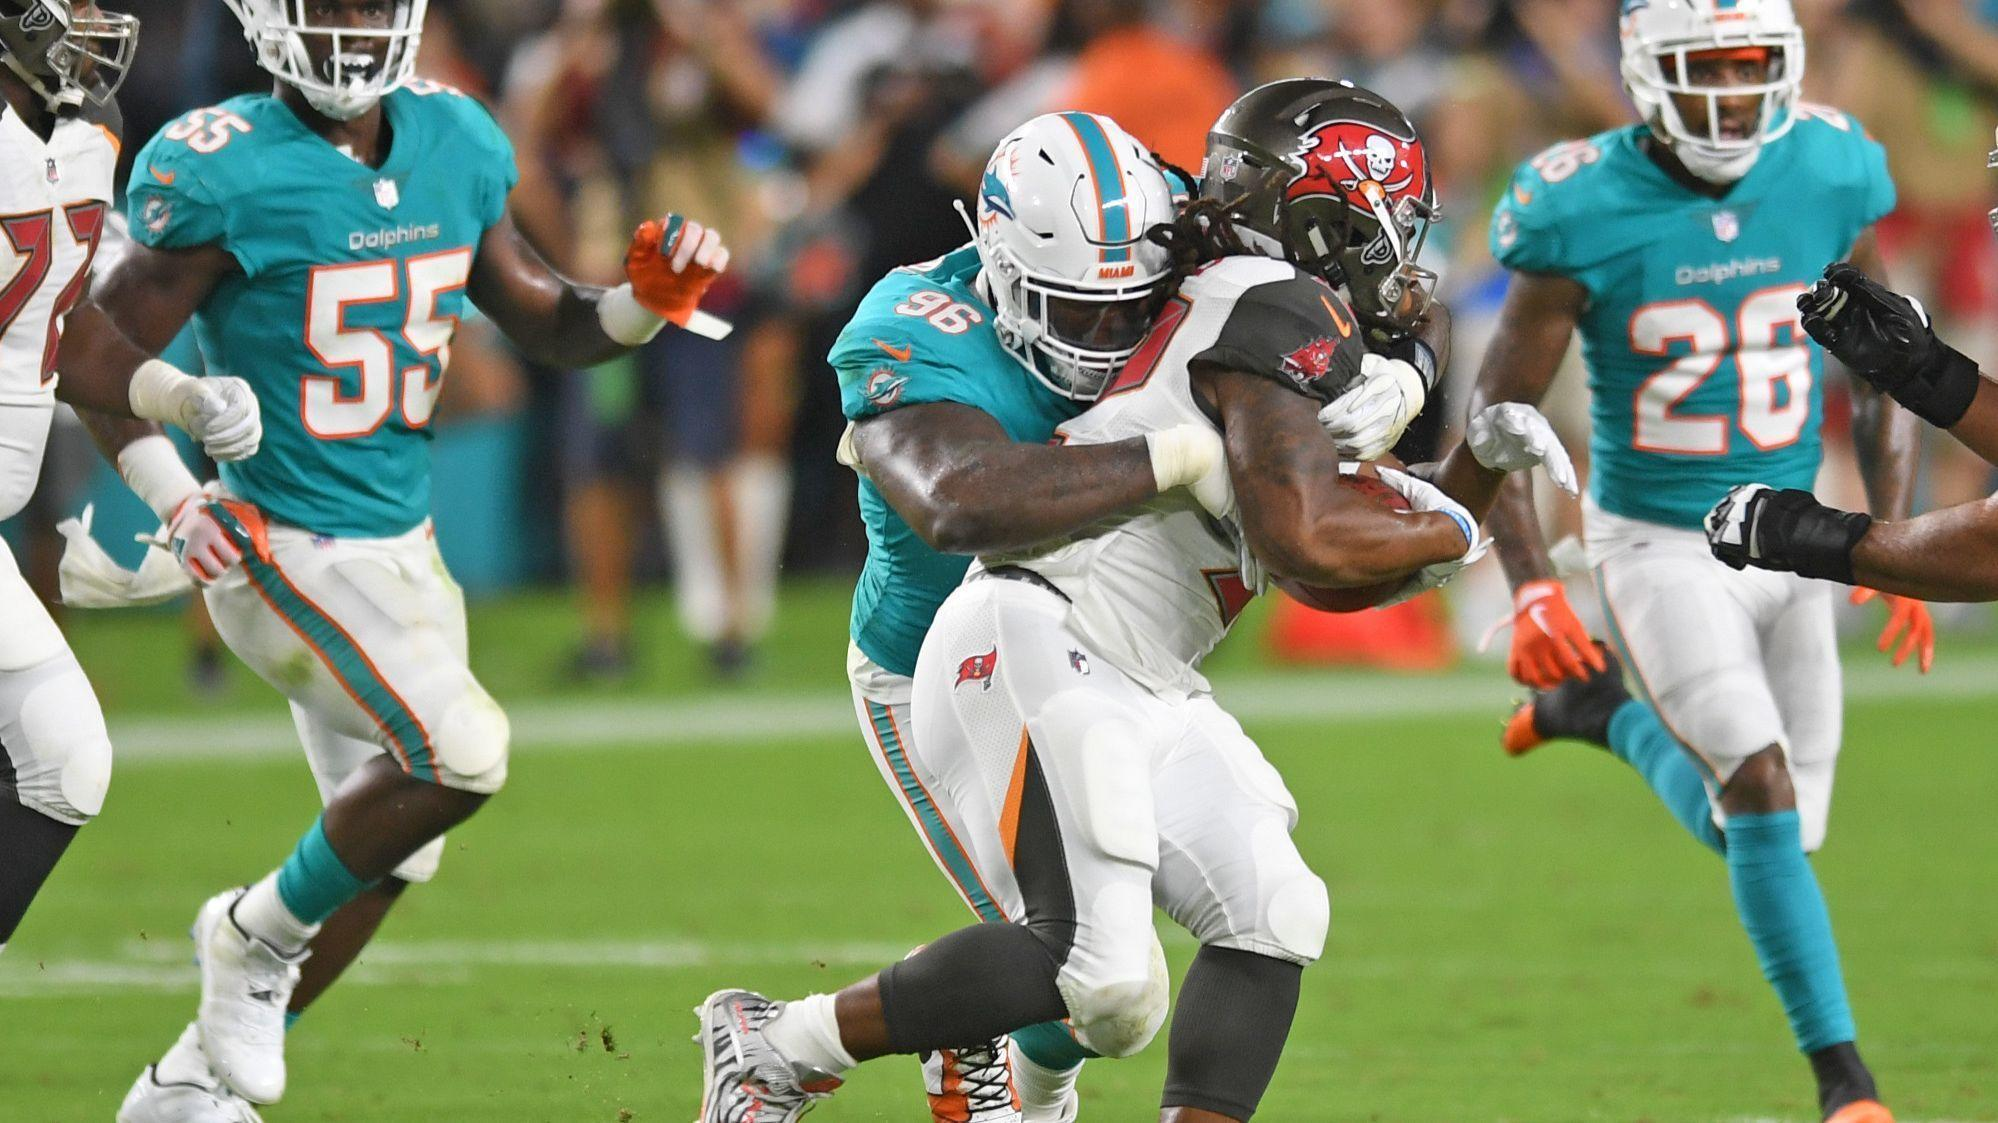 Fl-sp-hyde10-dolphins-bucs-thoughts-20180809